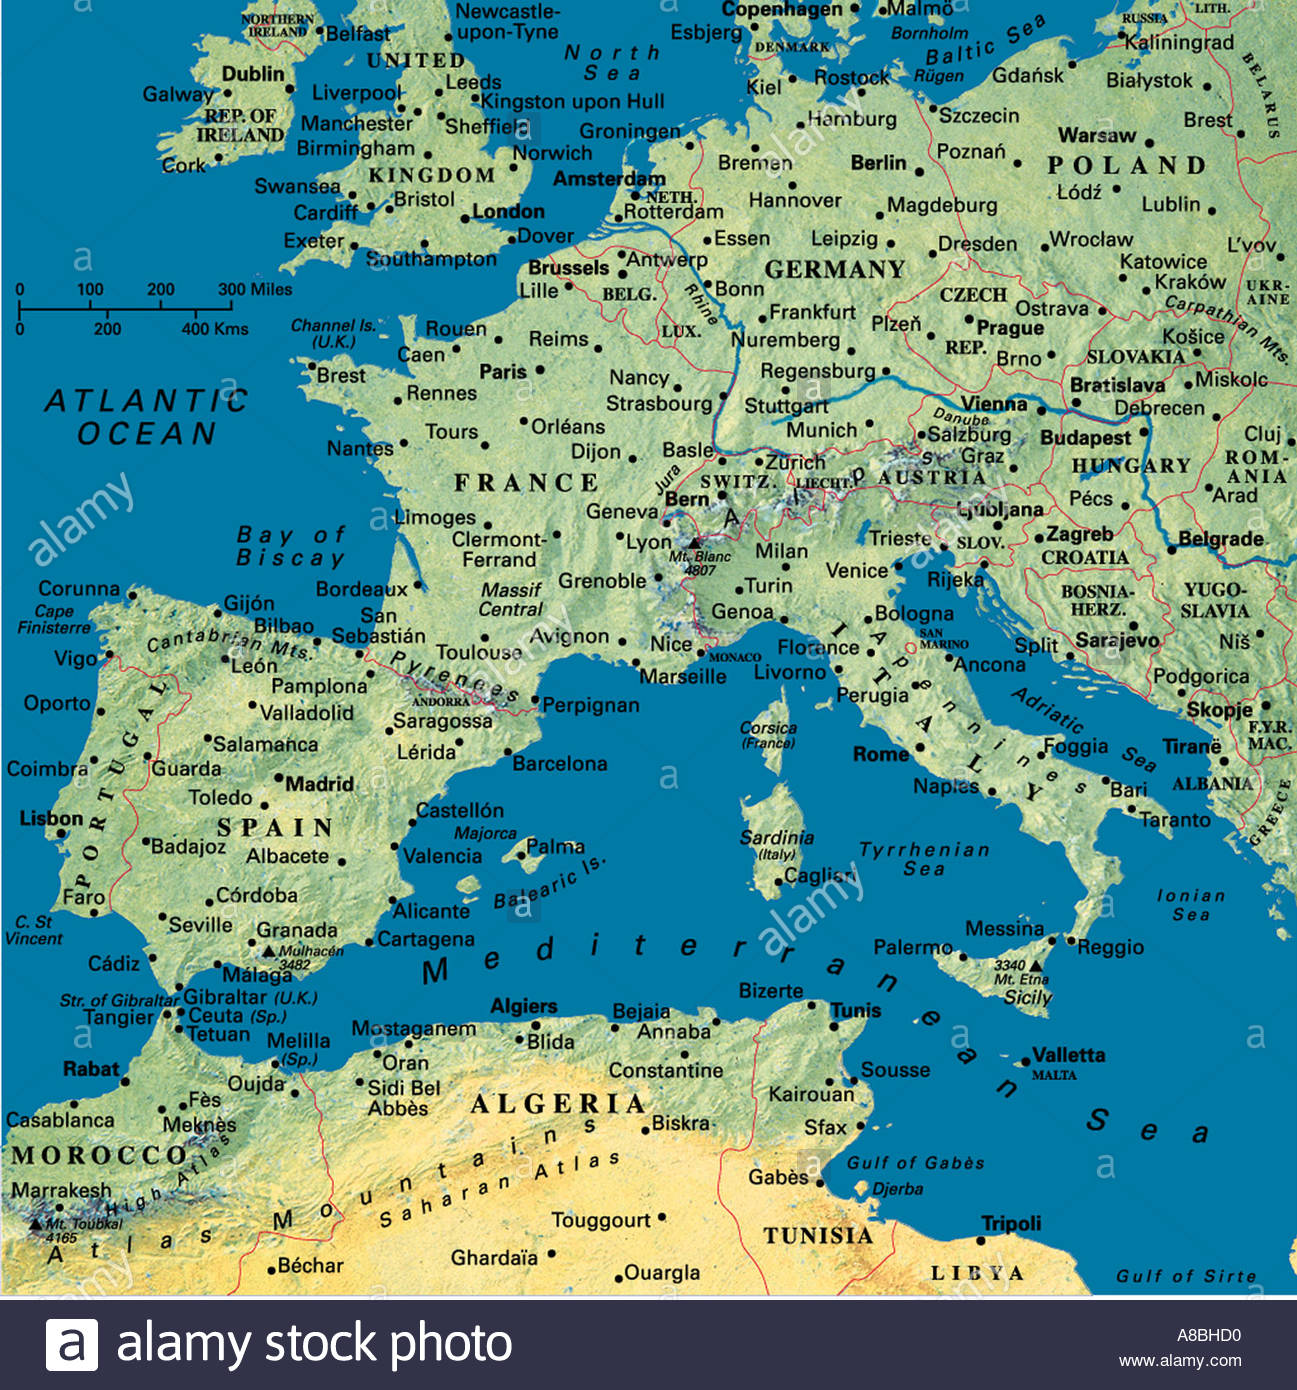 Map Of Spain Portugal And France.Map Maps Europe Algeria Tunesia North Africa Spain Portugal France